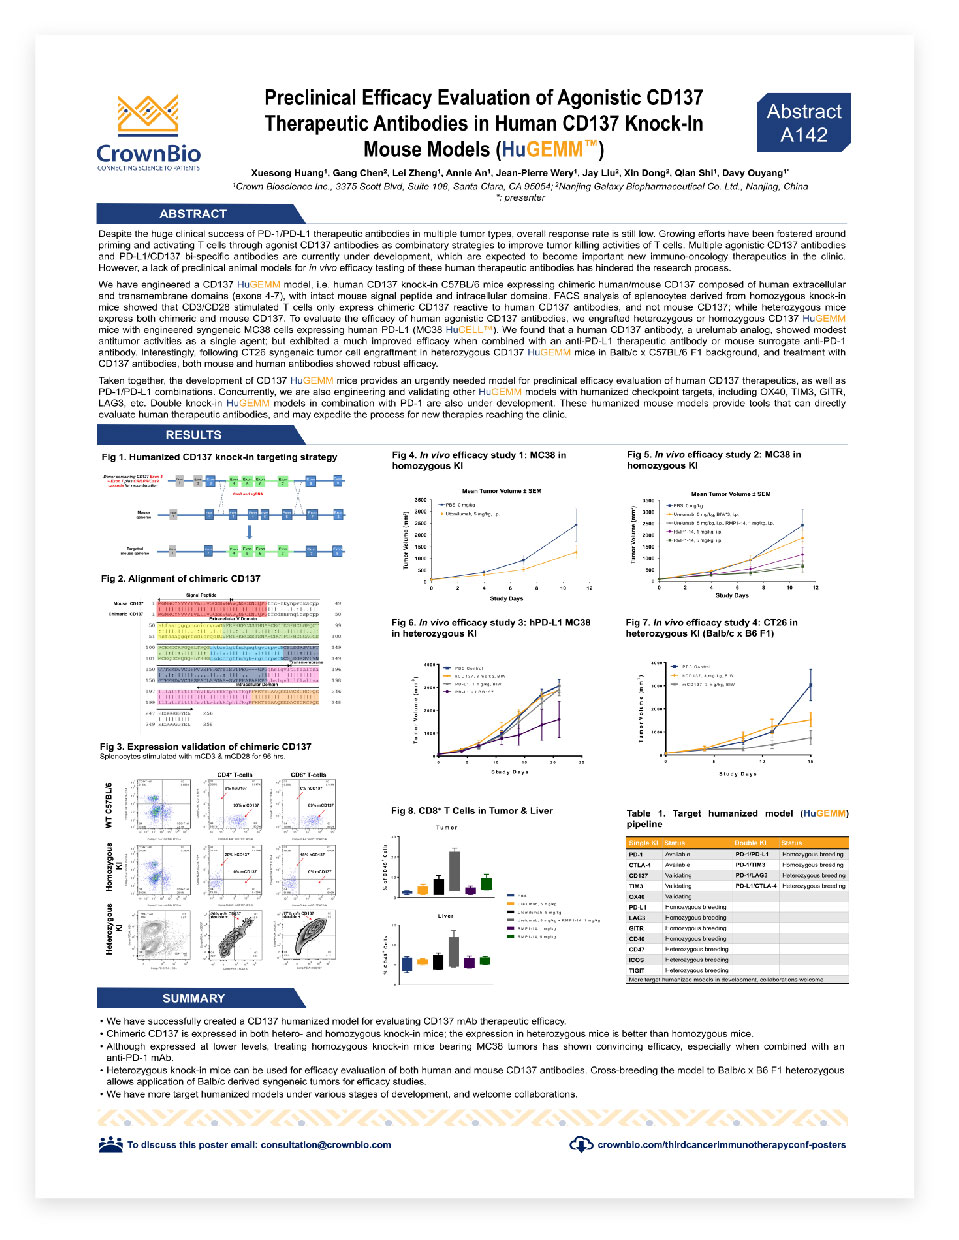 CrownBio 2017. Poster: Humanized CD137 Models for Preclinical Drug Development